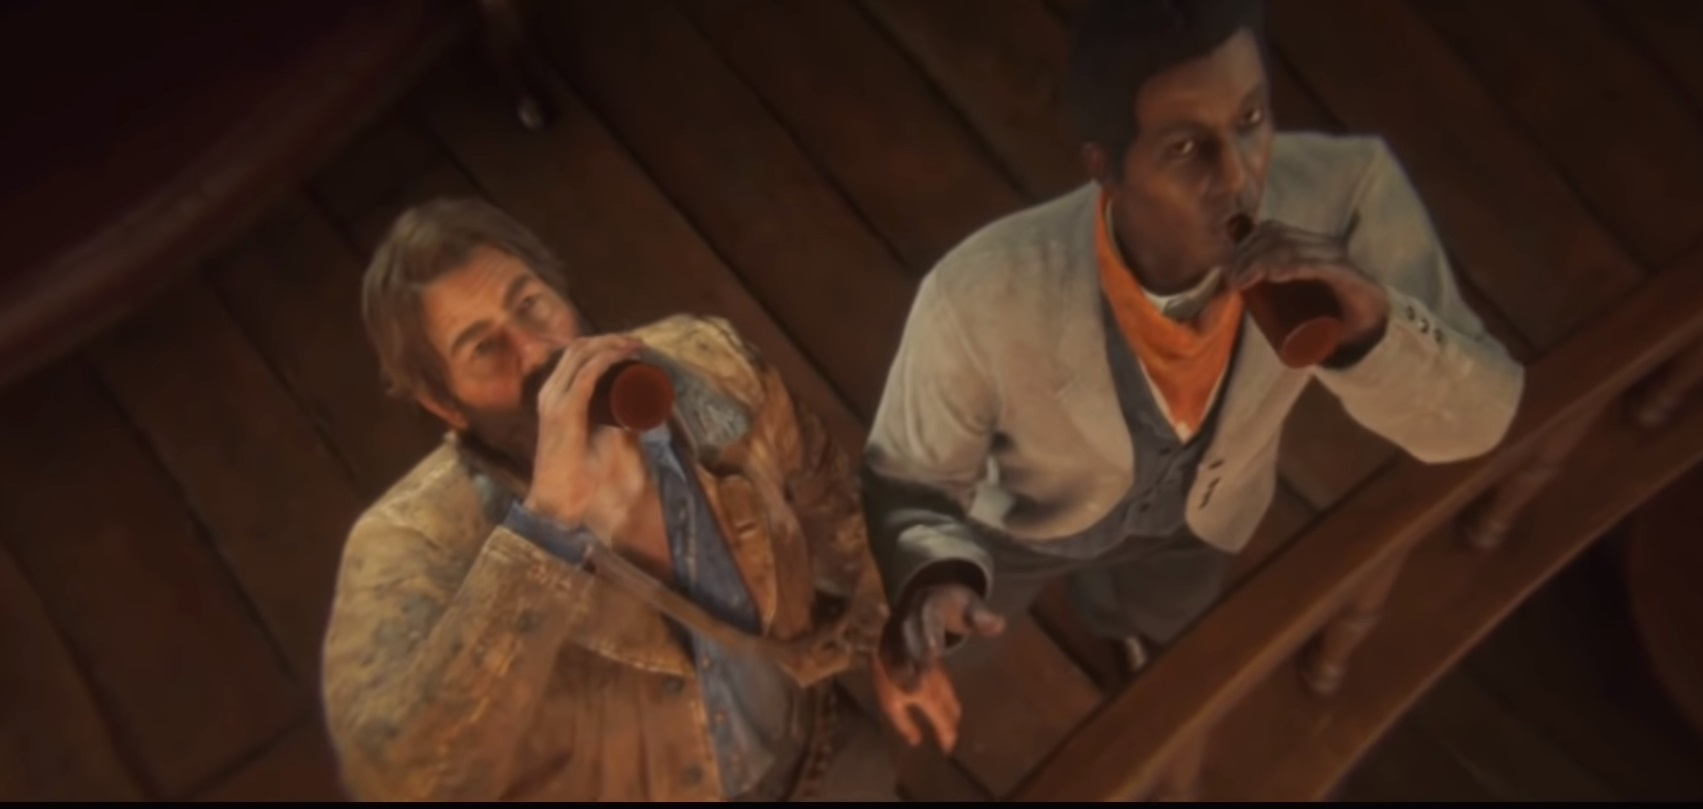 Red Dead Redemption 2 takes a serious look at sad, macho booze culture